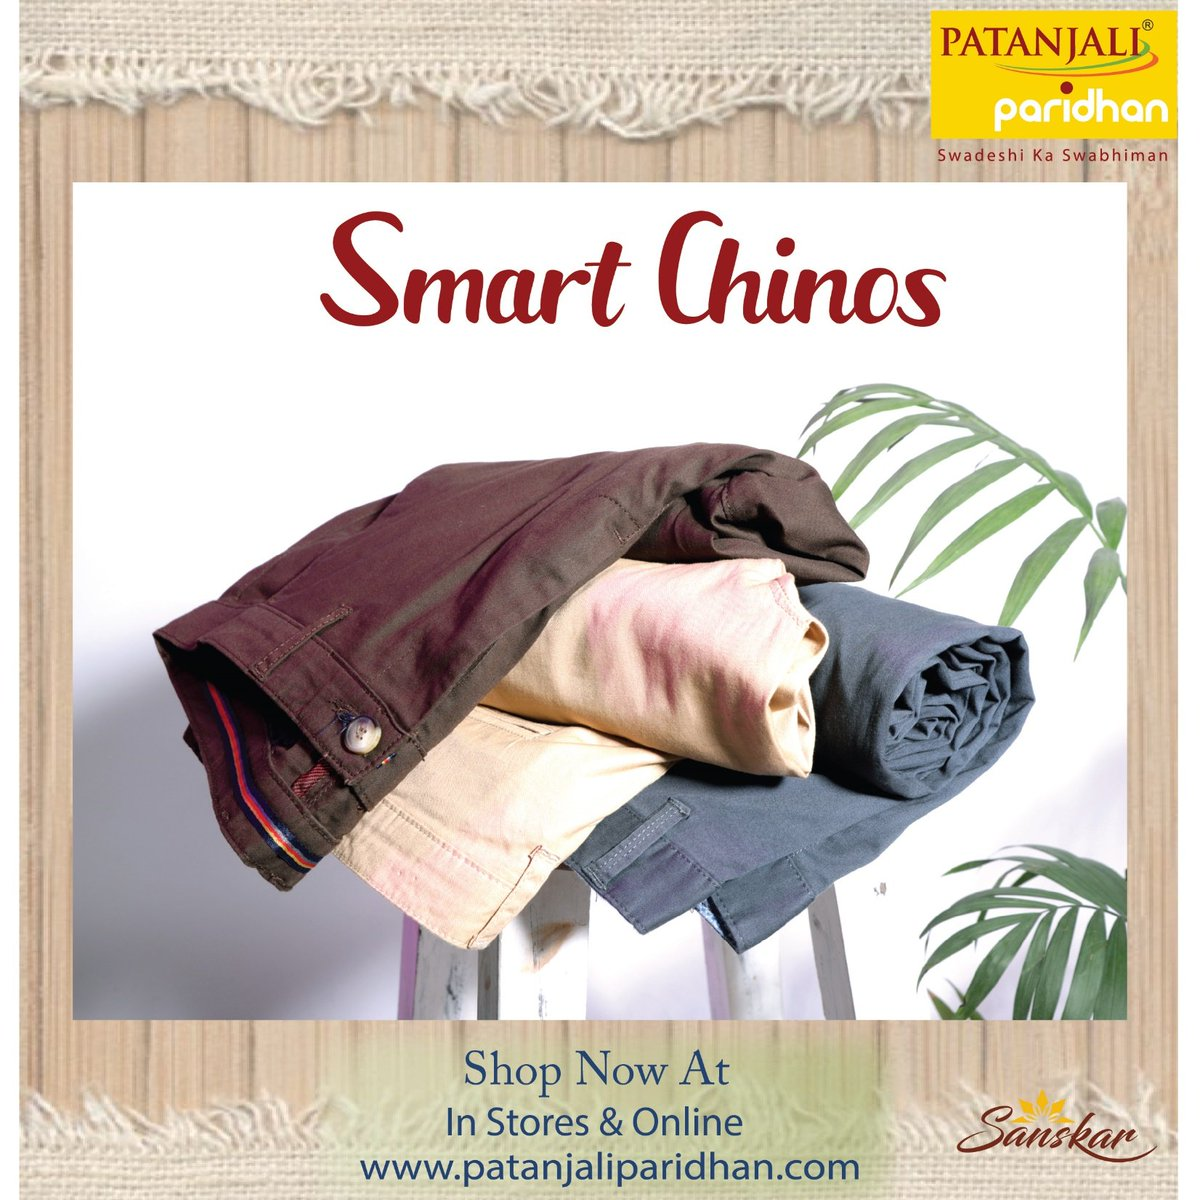 Chinos for your every occasion and every mood. Soft, comfortable and stylish.  Dress your best inthe wide range of colours available in the #PatanjaliParidhan stores.Sanskar Mens Chinos … SHOP NOW !! #Smartcasuals #patanjali #sanskar #menswear #swadeshi